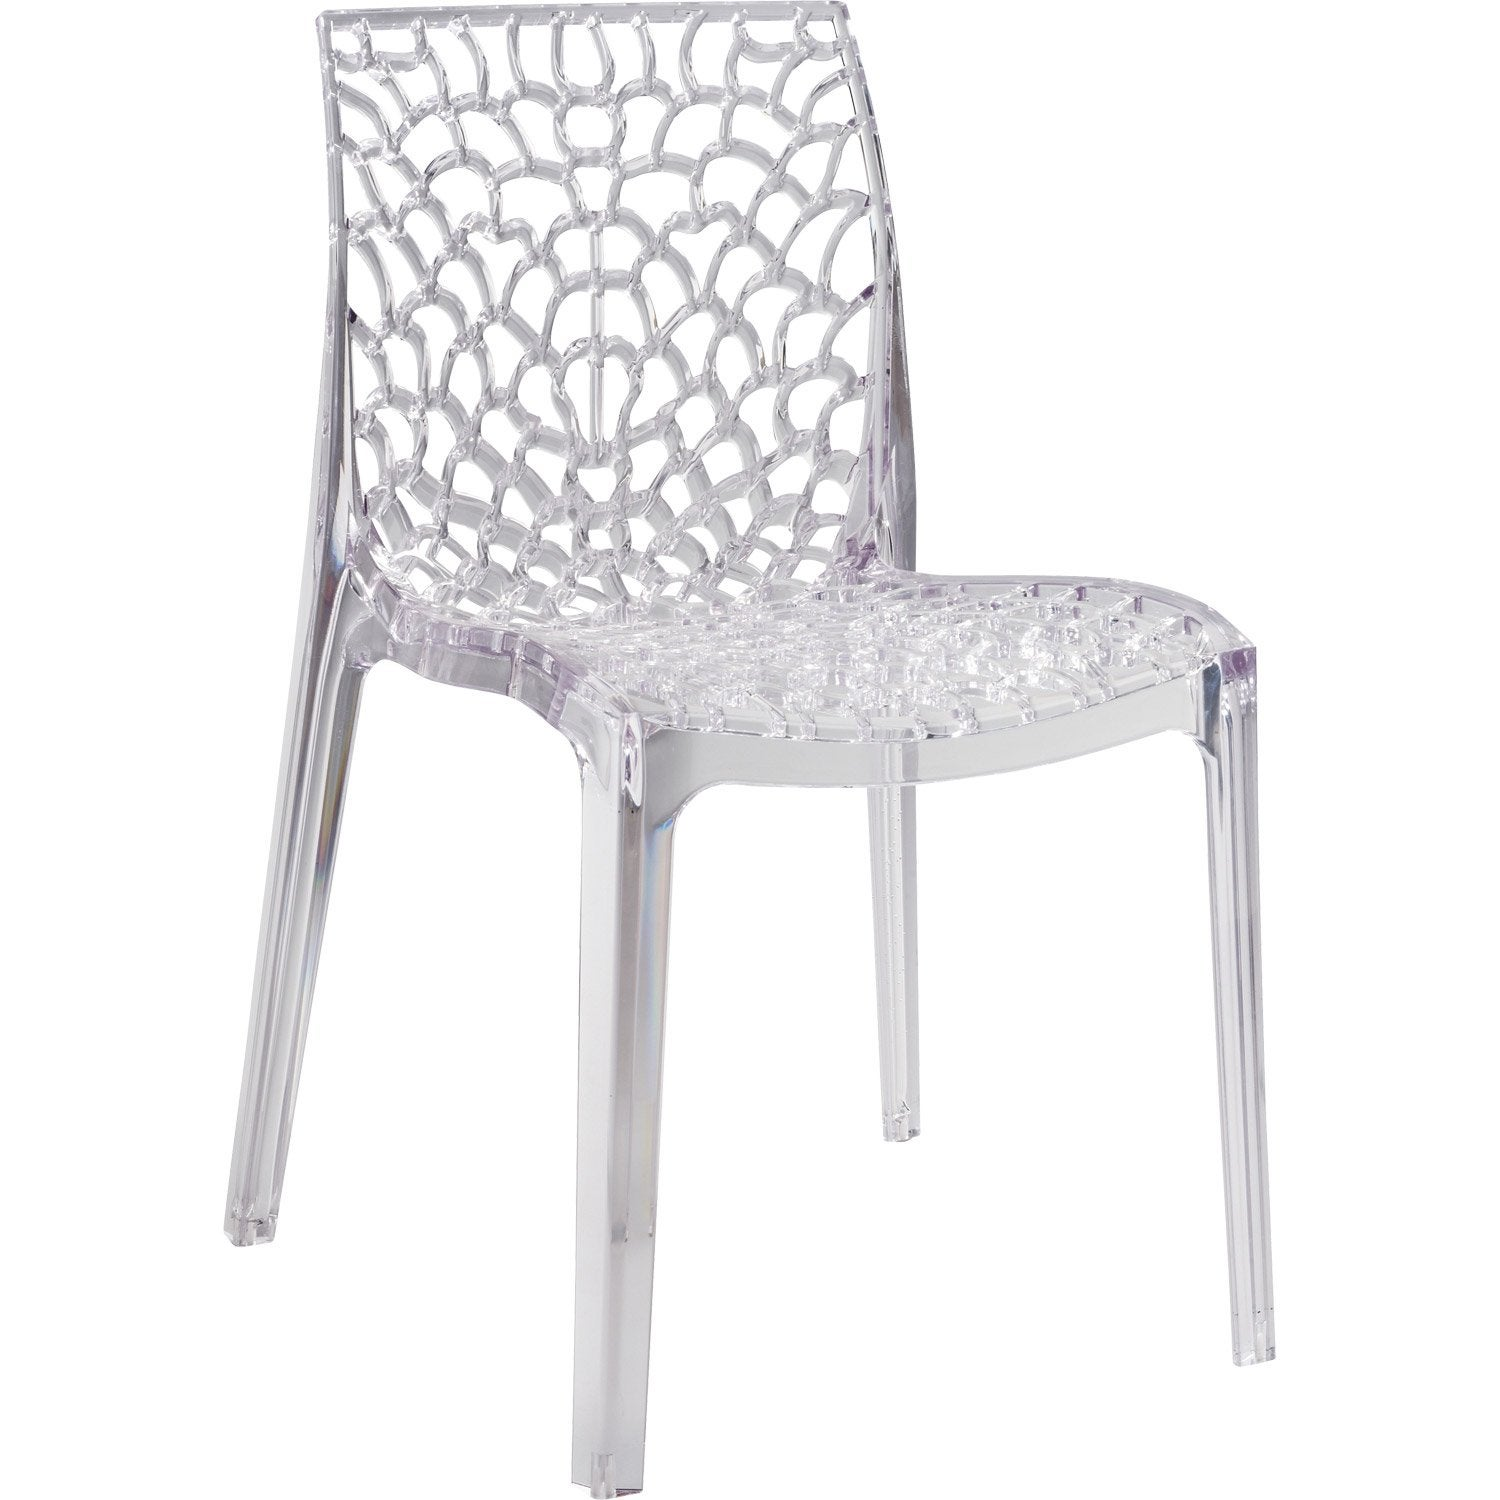 Chaise de jardin en polycarbonate grafik lux transparent leroy merlin for Chaise de jardin newton